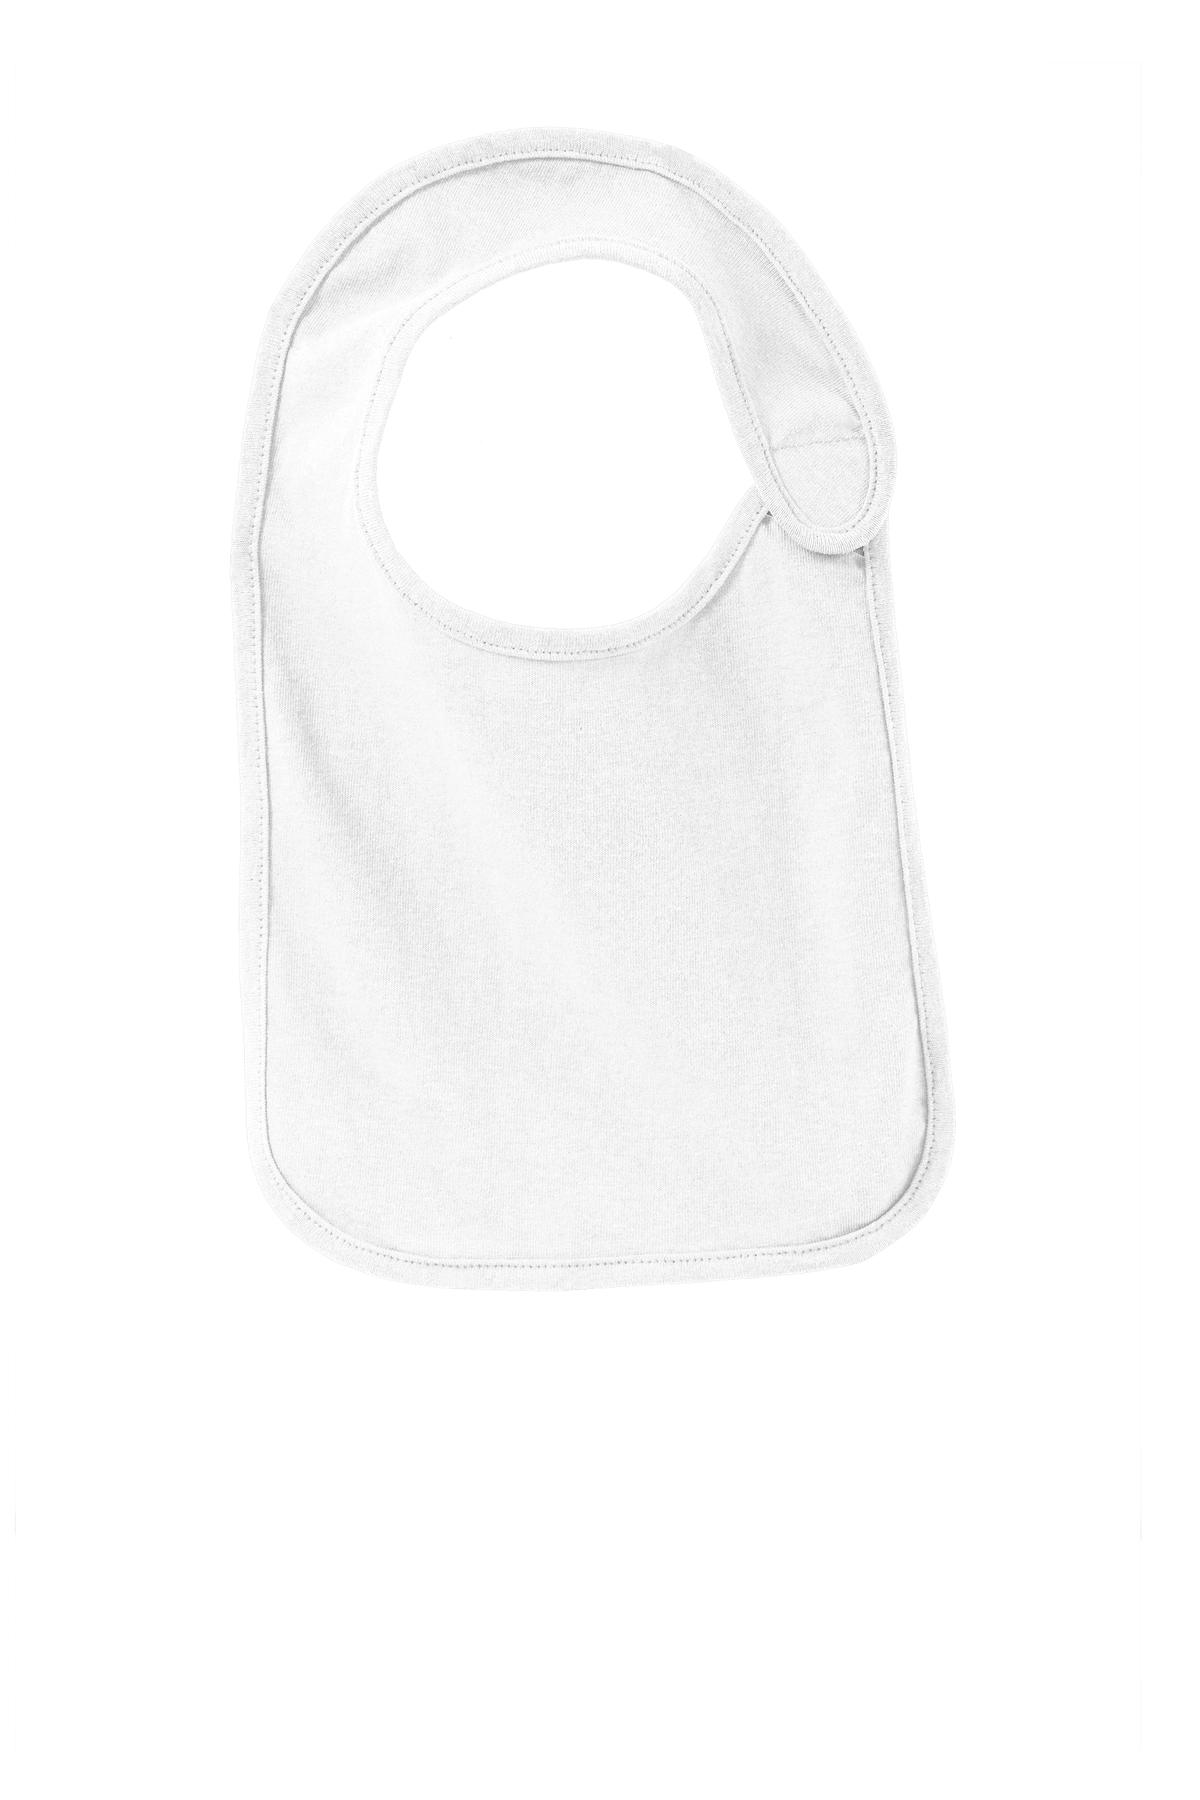 Precious Cargo ®  Infant Jersey Bib. CAR30